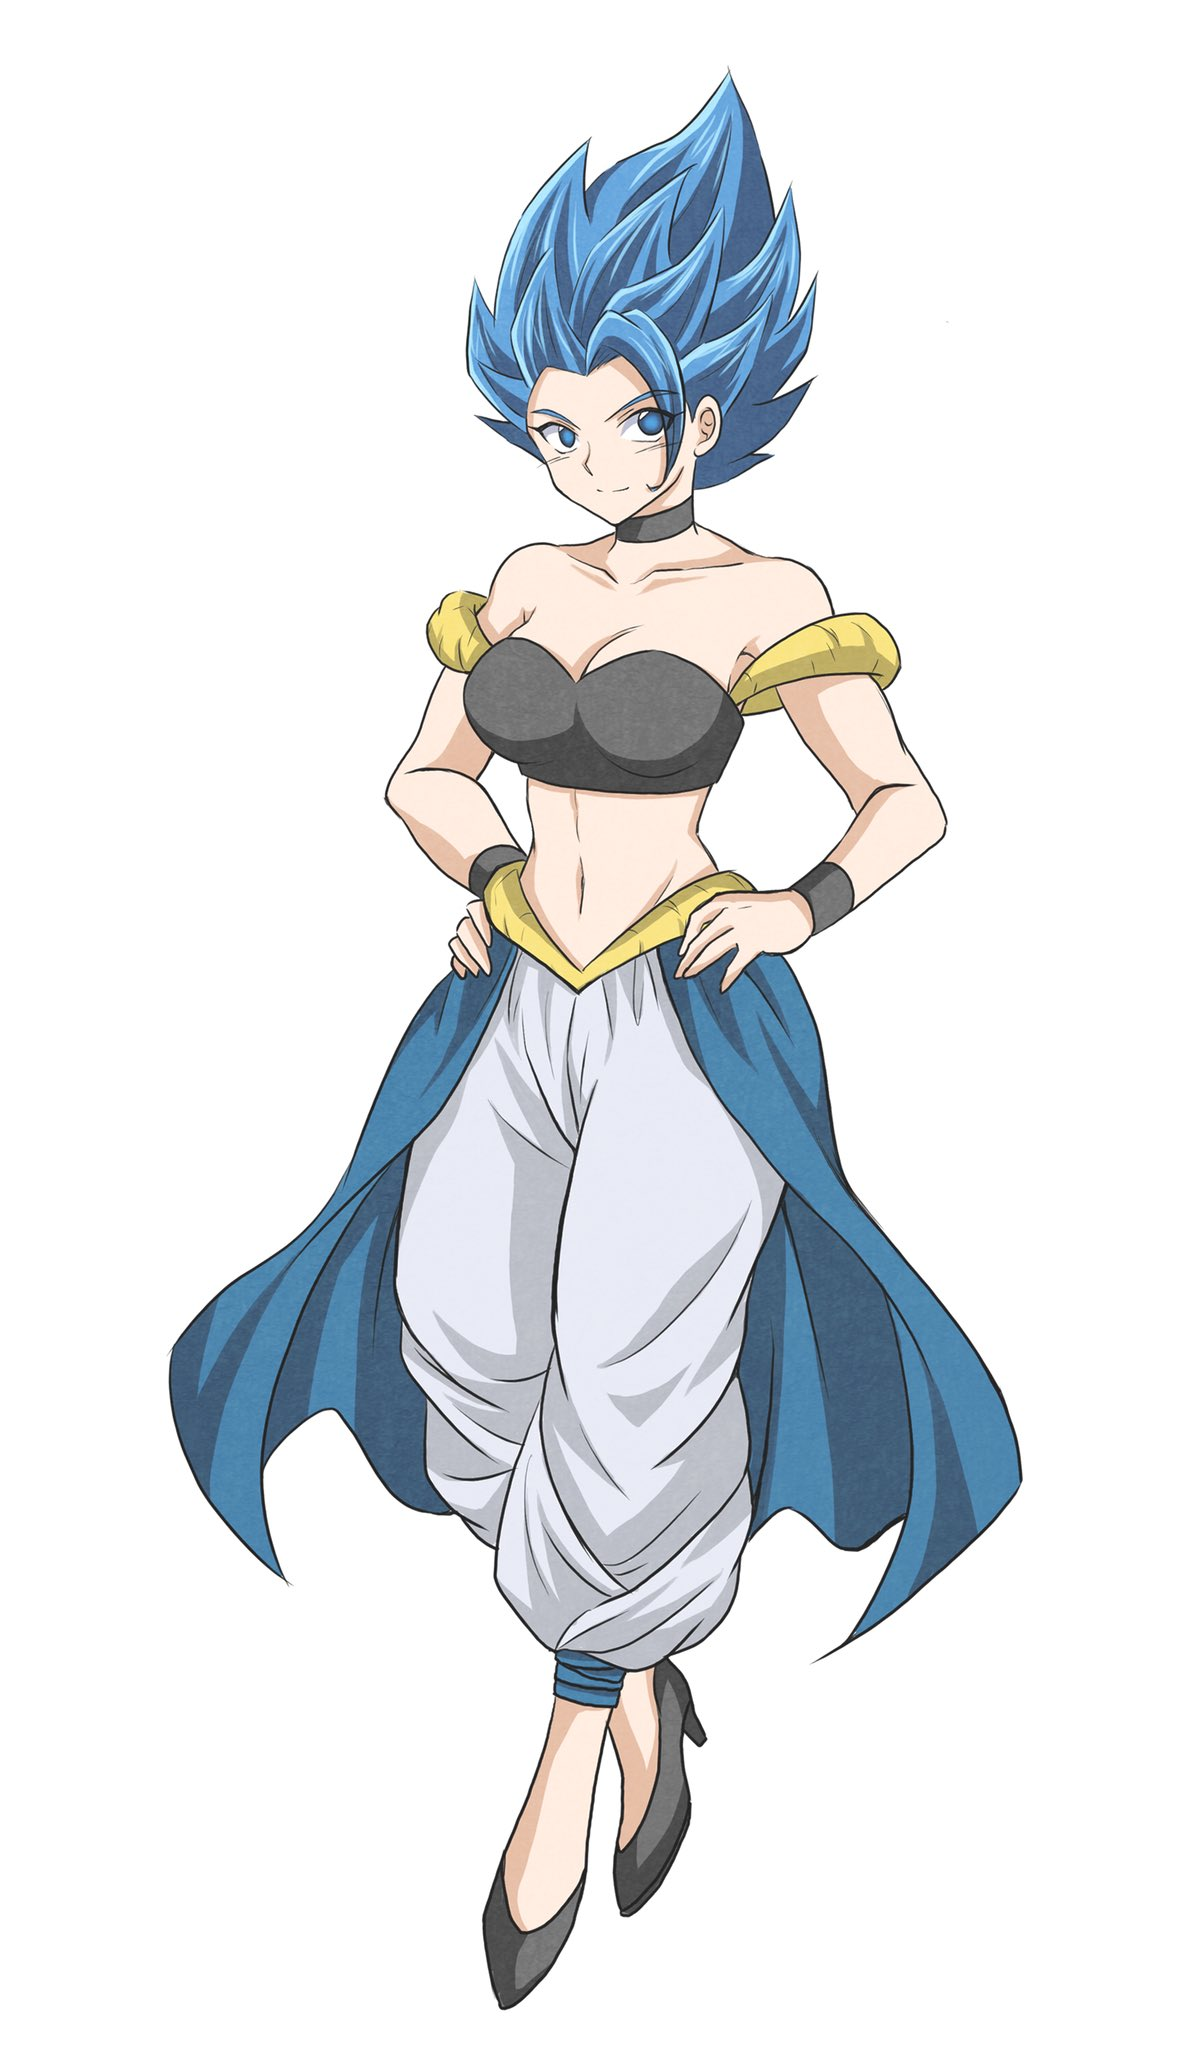 1girl alternate_costume blue_eyes blue_hair bracelet choker closed_mouth collarbone dragon_ball dragon_ball_super genderswap genderswap_(mtf) gogeta hands_on_hips high_heels highres jewelry light_smile looking_at_viewer pants solo spiky_hair super_saiyan super_saiyan_blue taka_lovecheese waist_cape white_pants